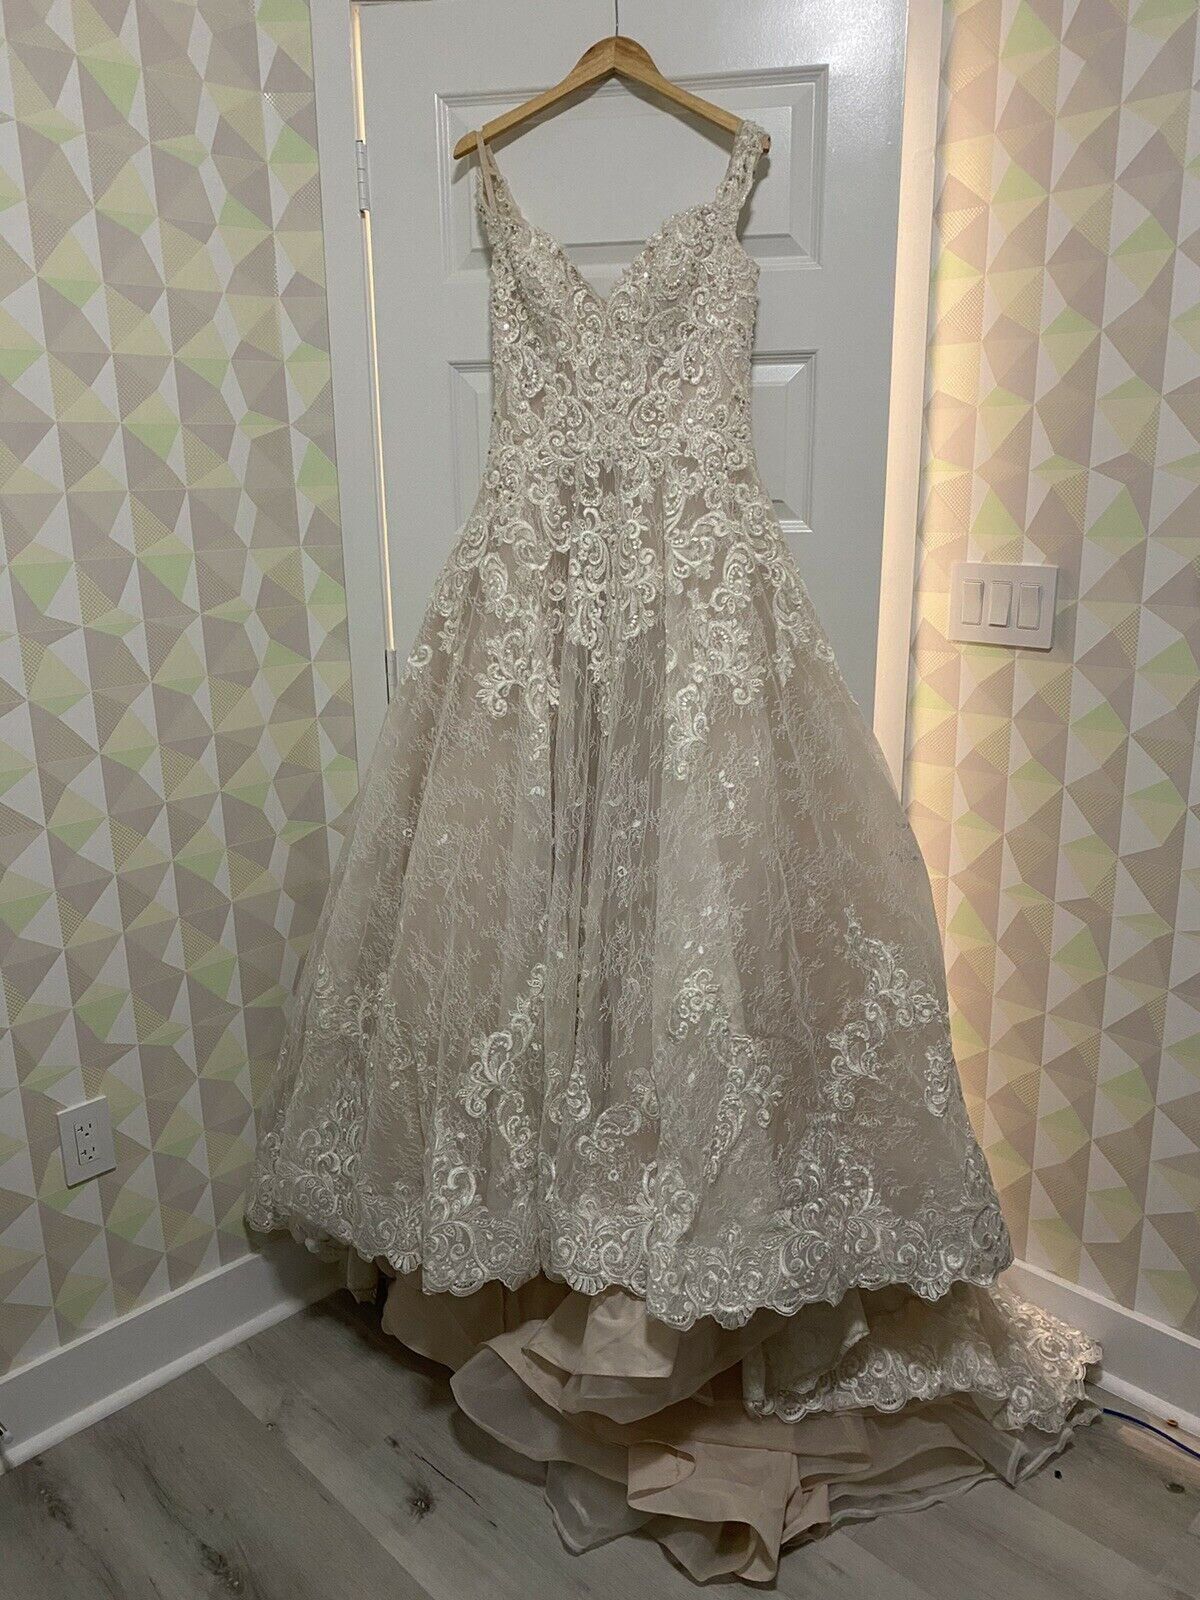 Wedding Dress Allure Couture C461 Size 10 - image 4